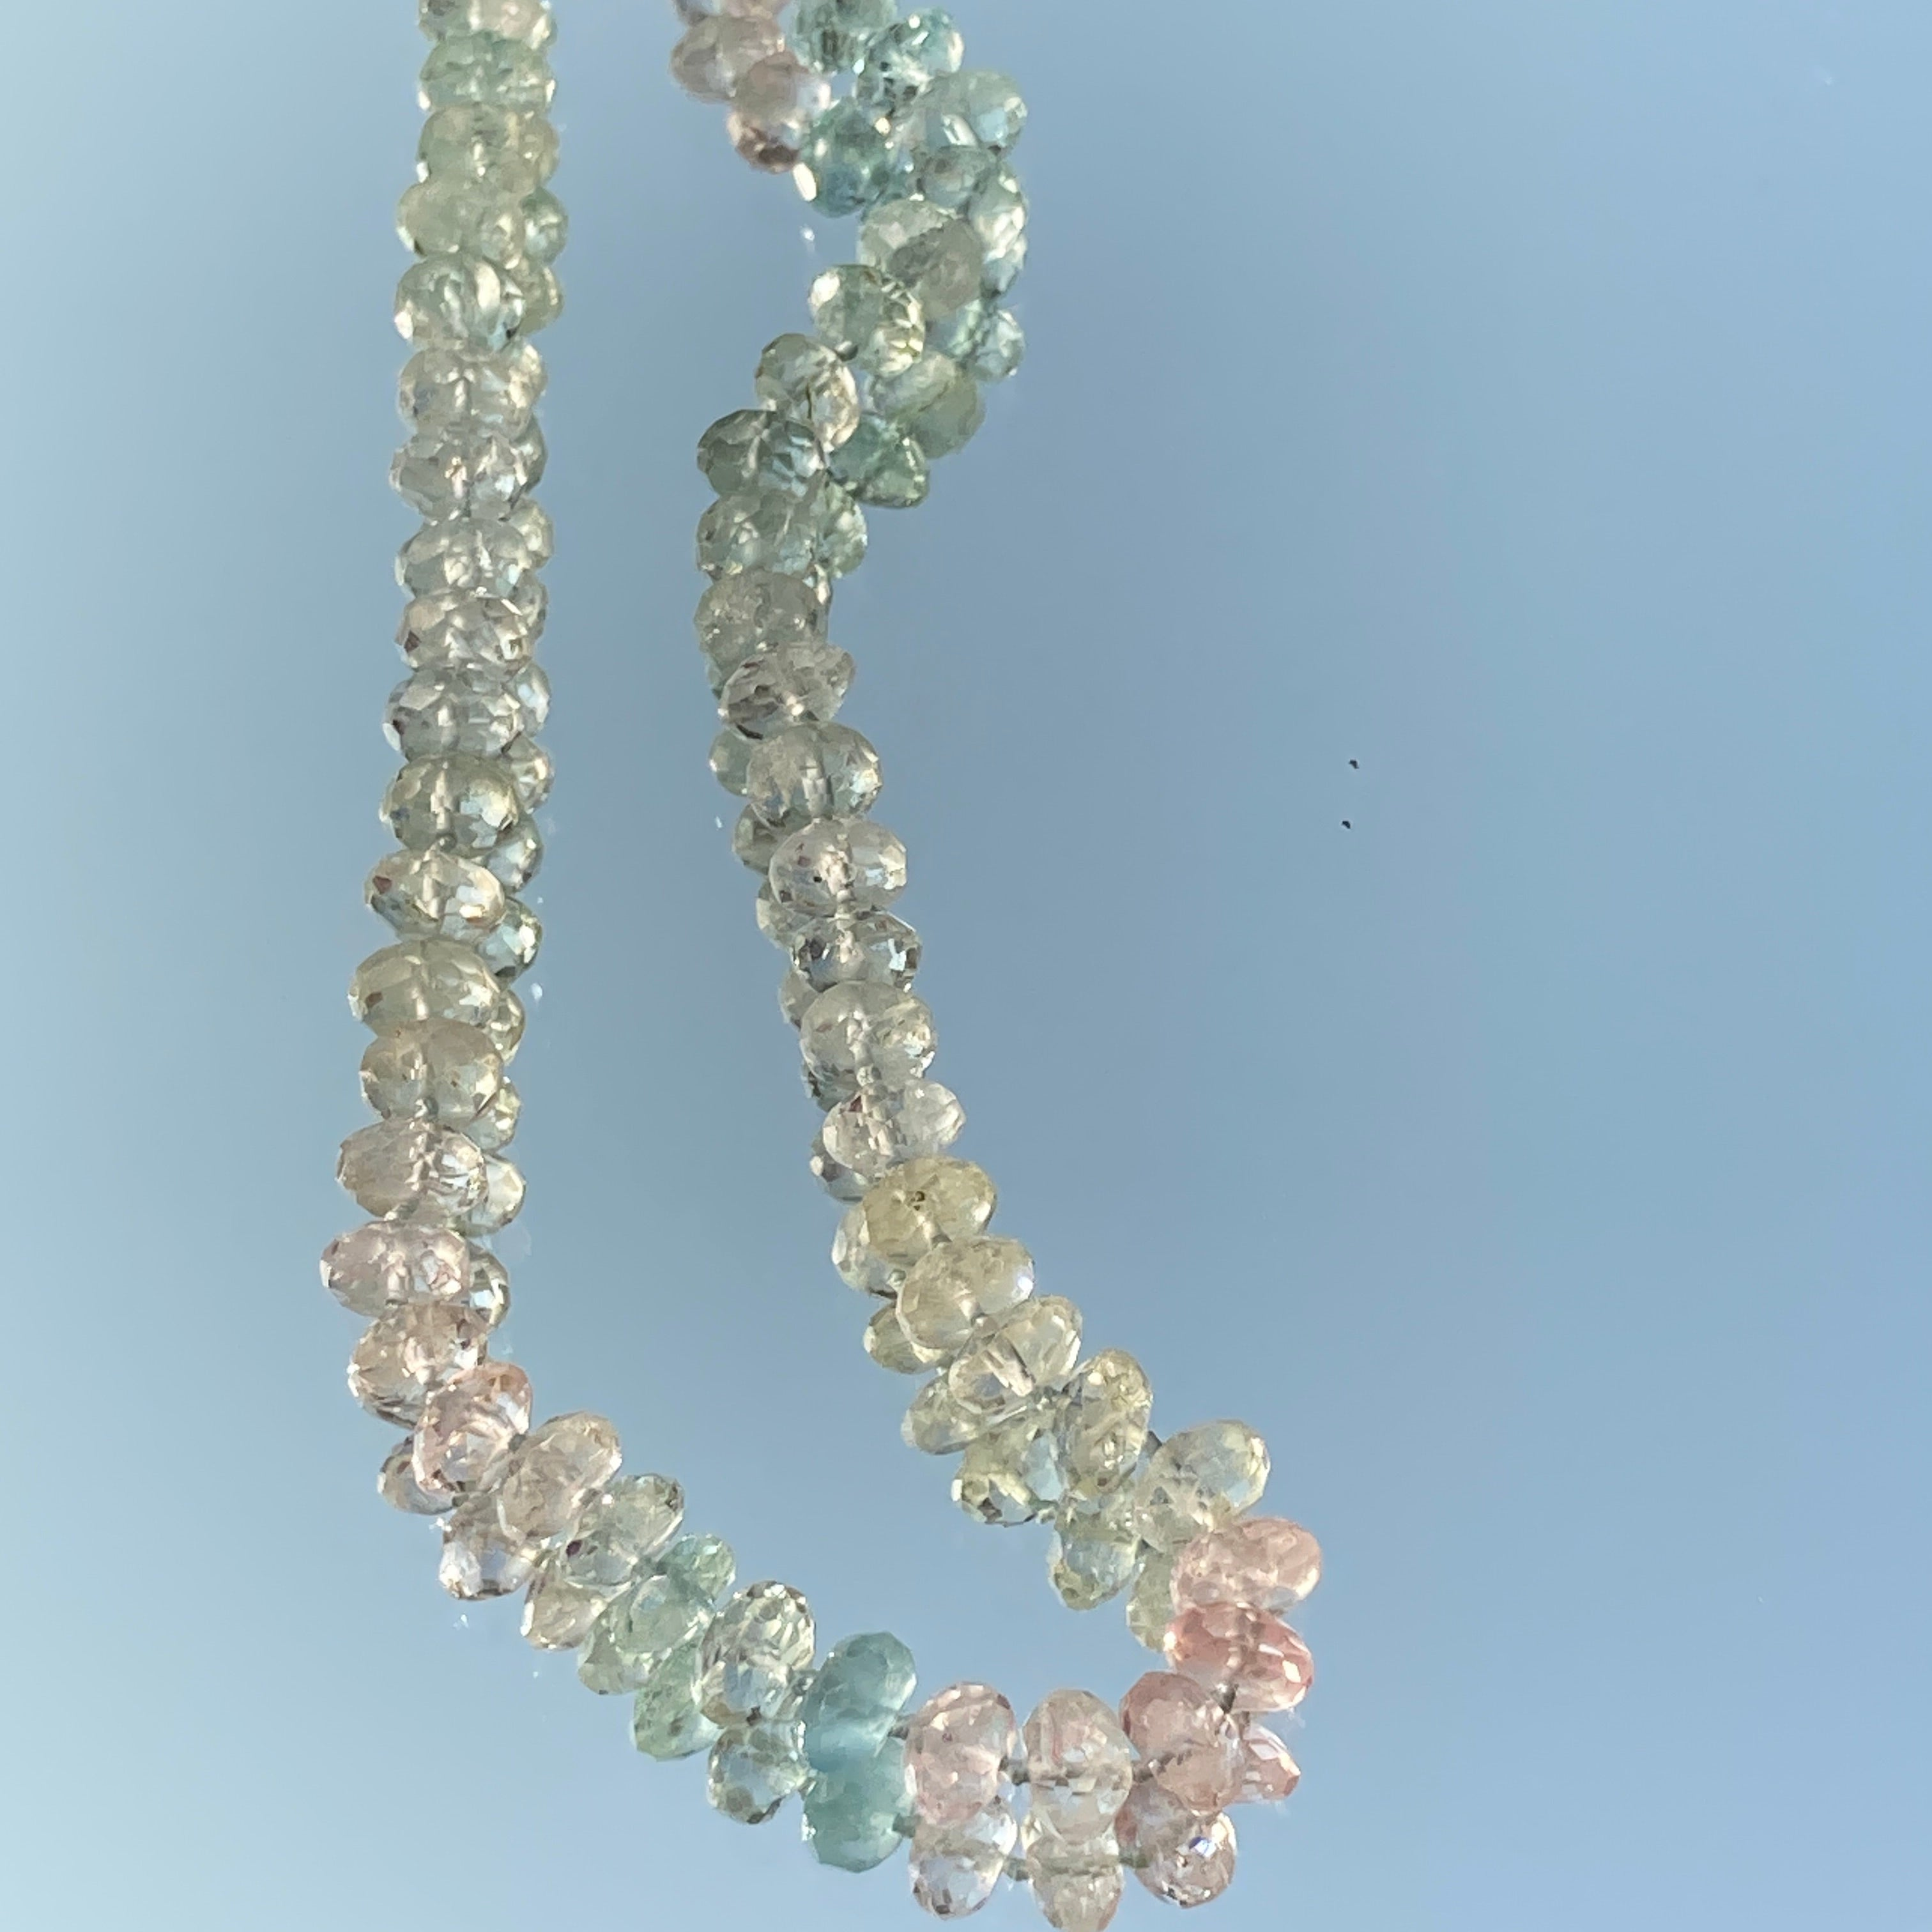 Aquamarine Continuous Strand Necklace